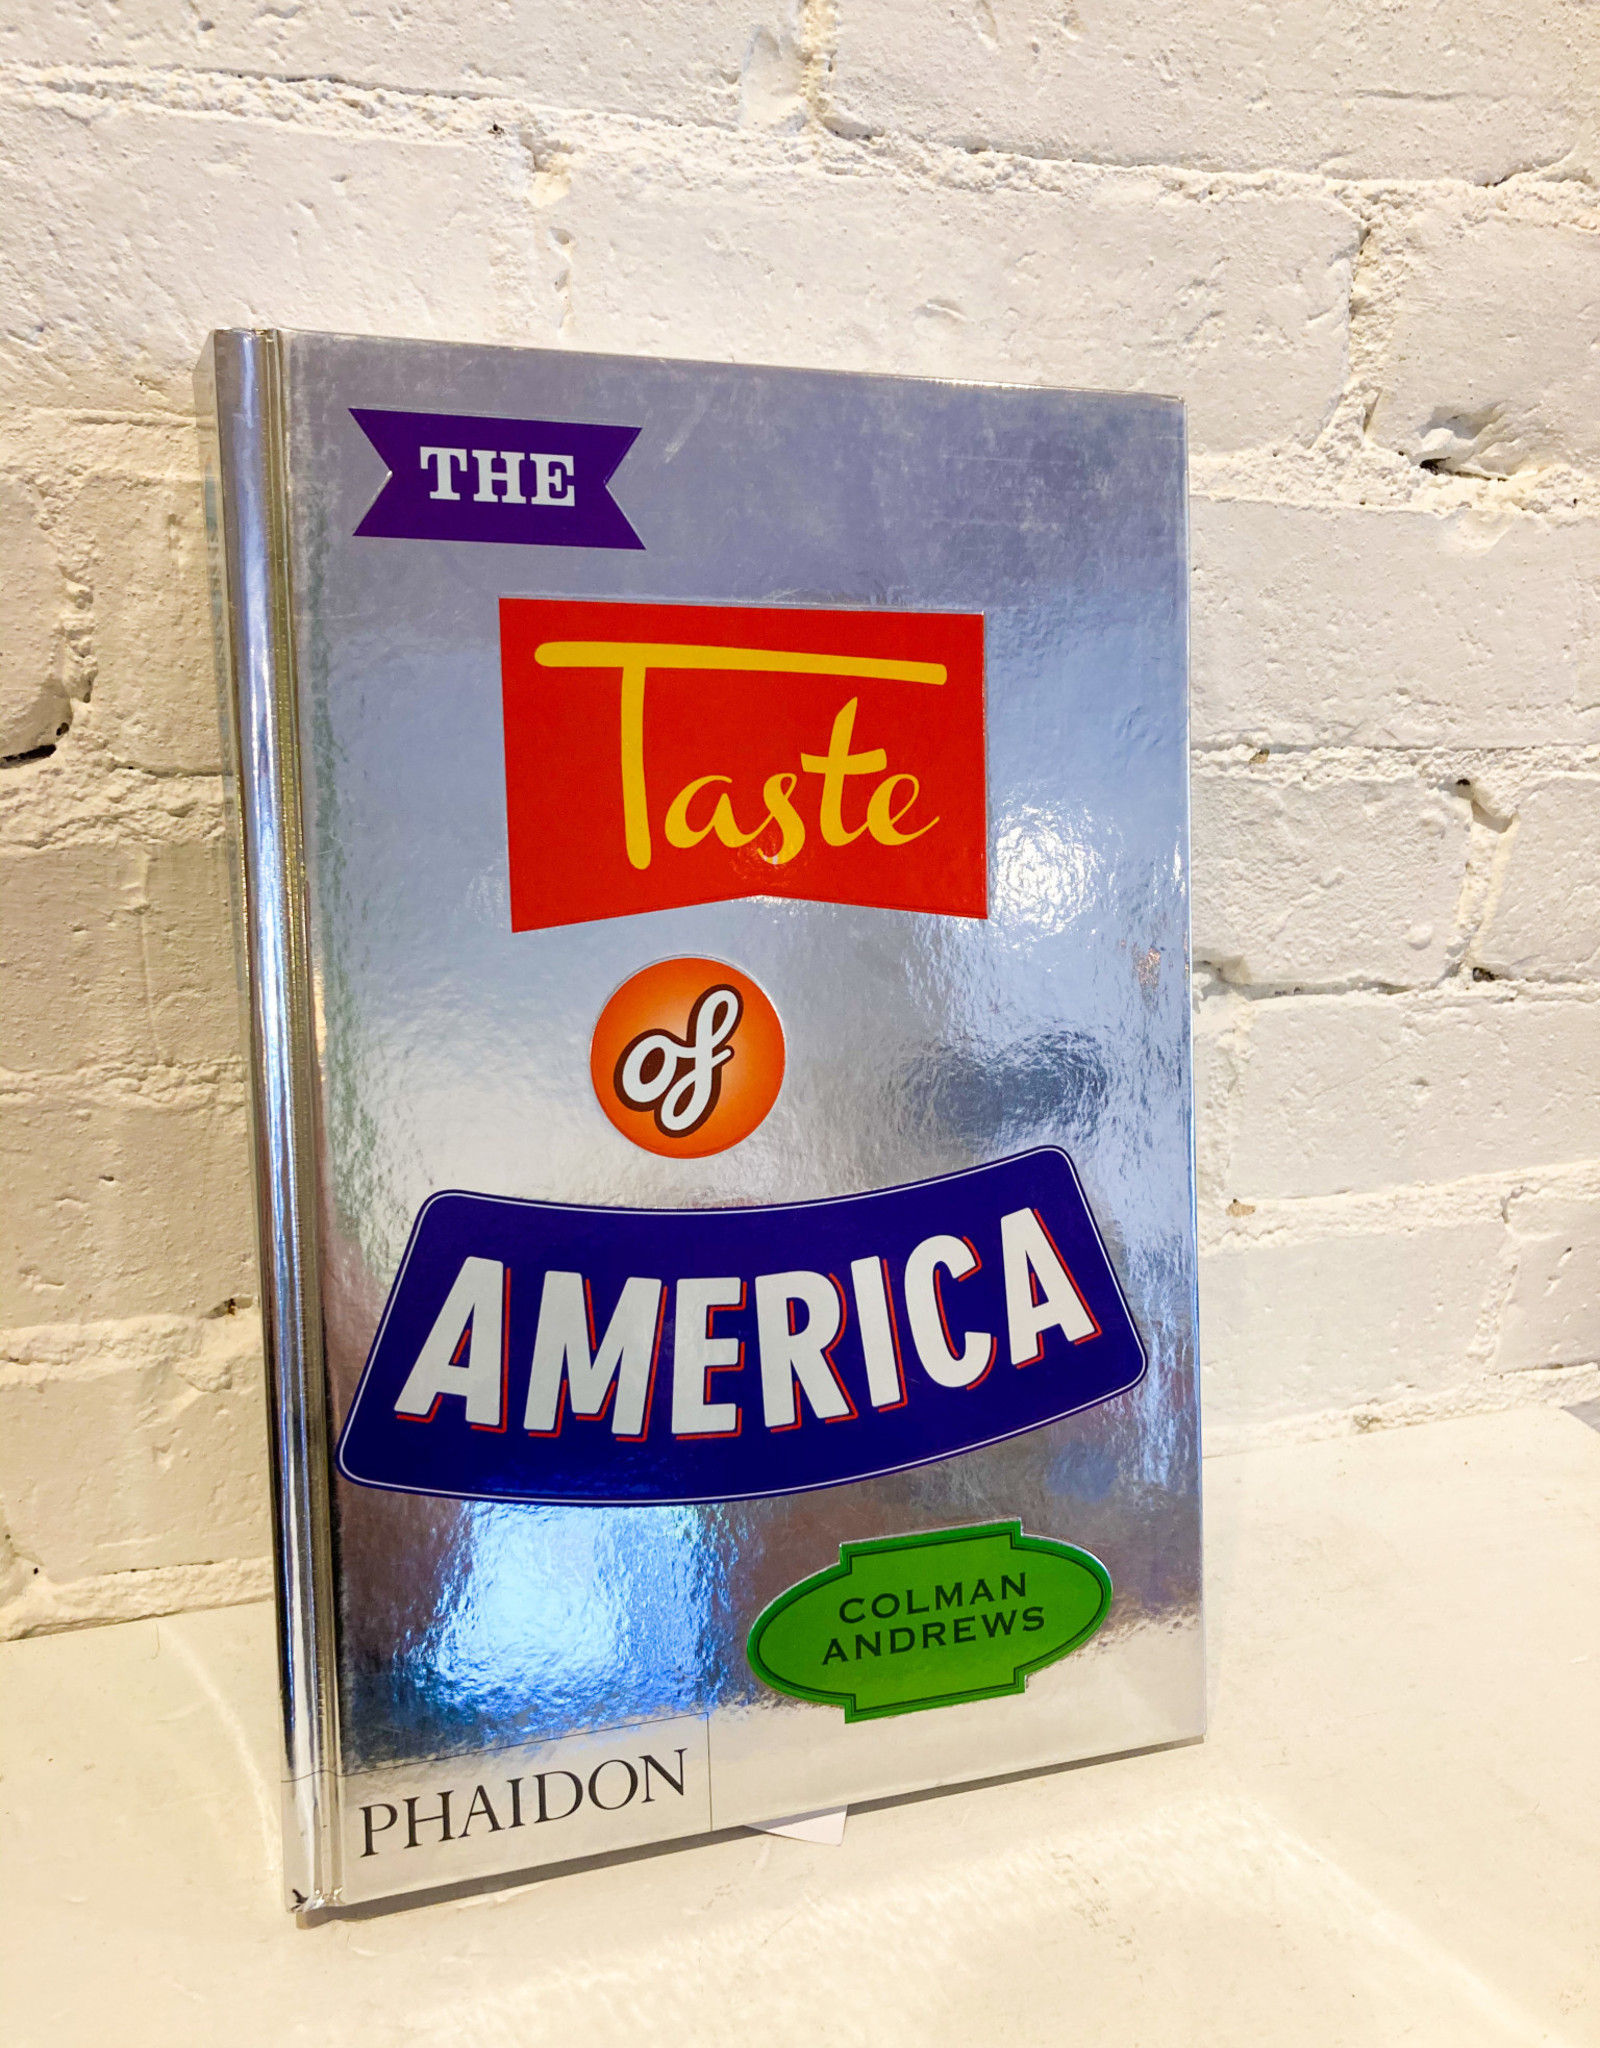 The Taste of America by Colman Andrews